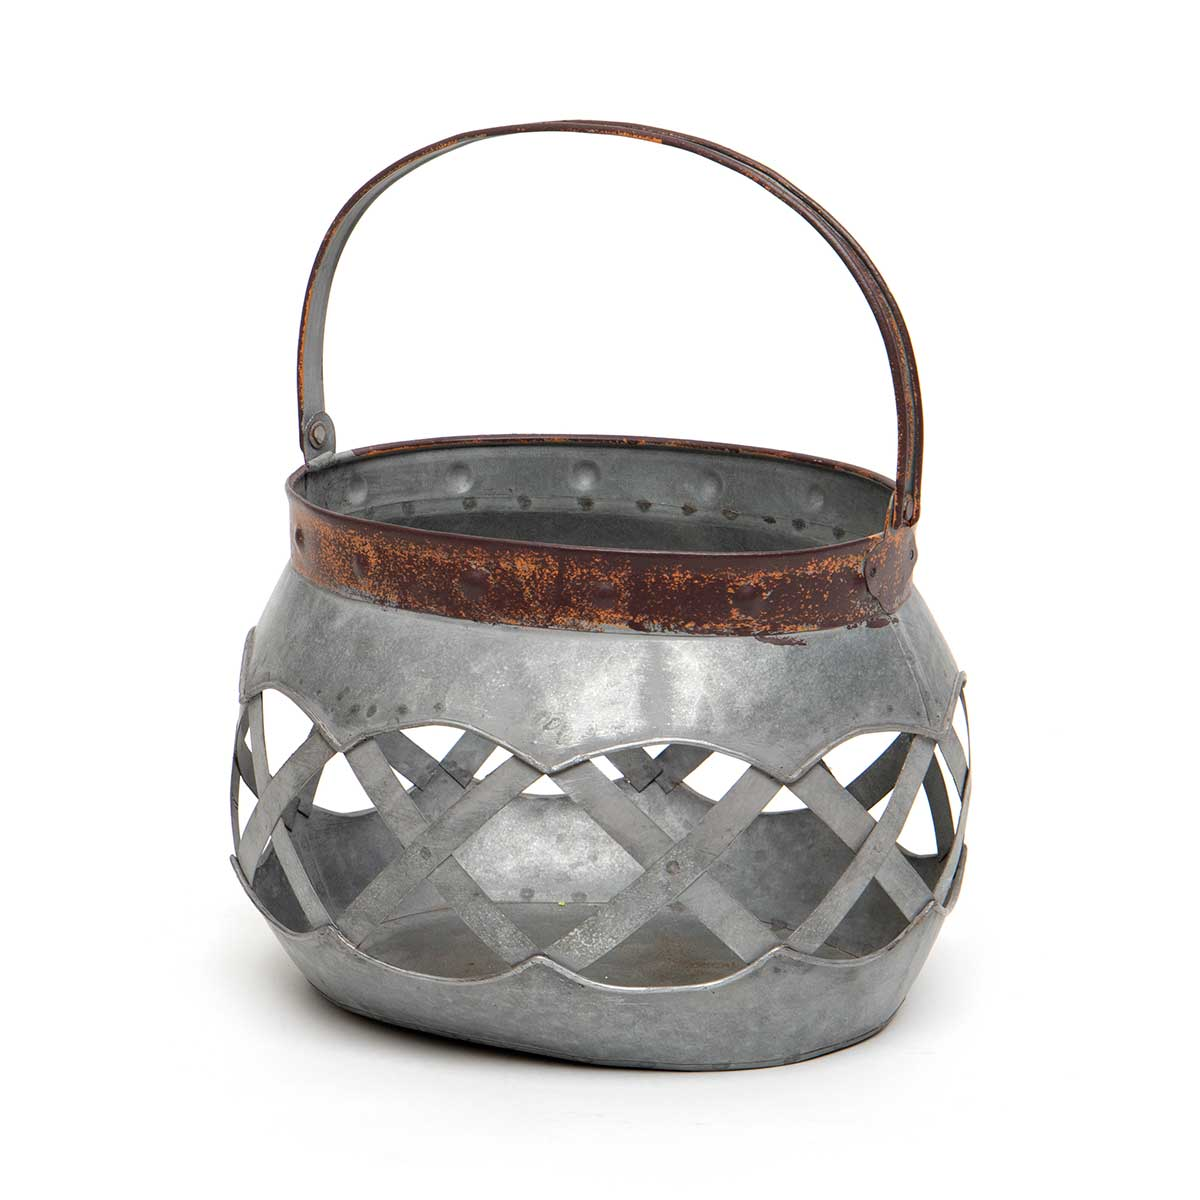 ROUND METAL LATTICE BASKET